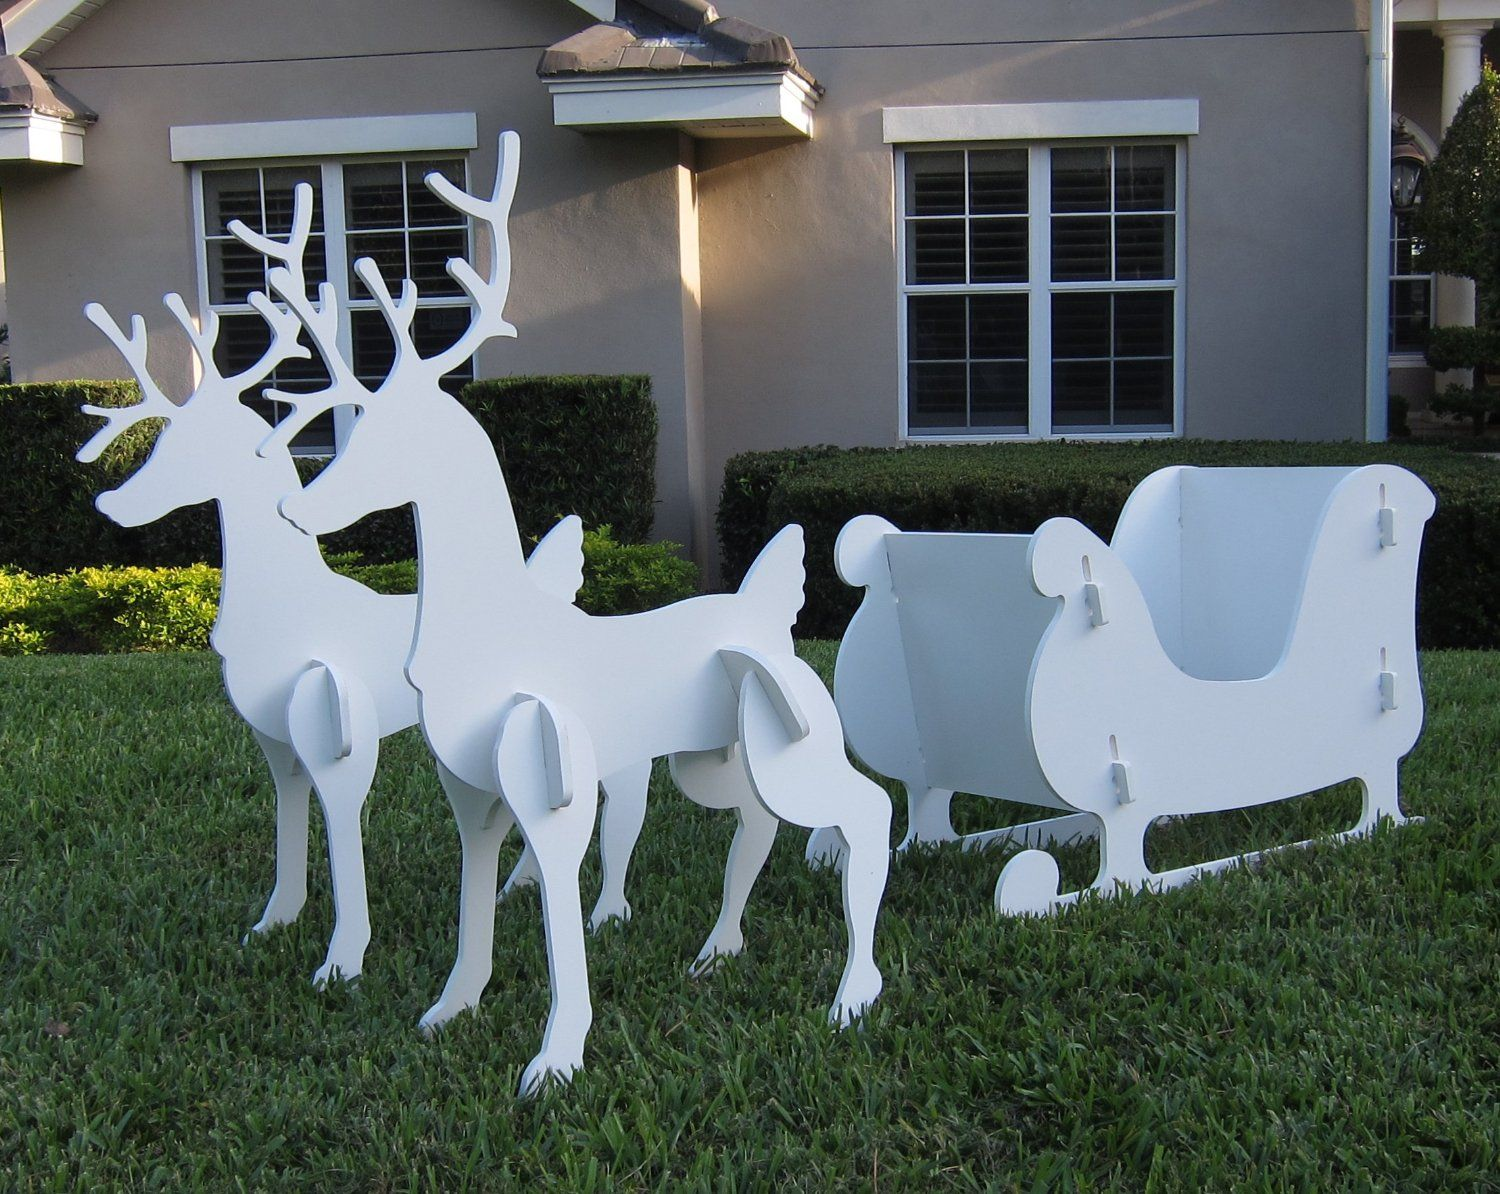 Santa sleigh reindeer outdoor yard decoration new for Holiday lawn decorations